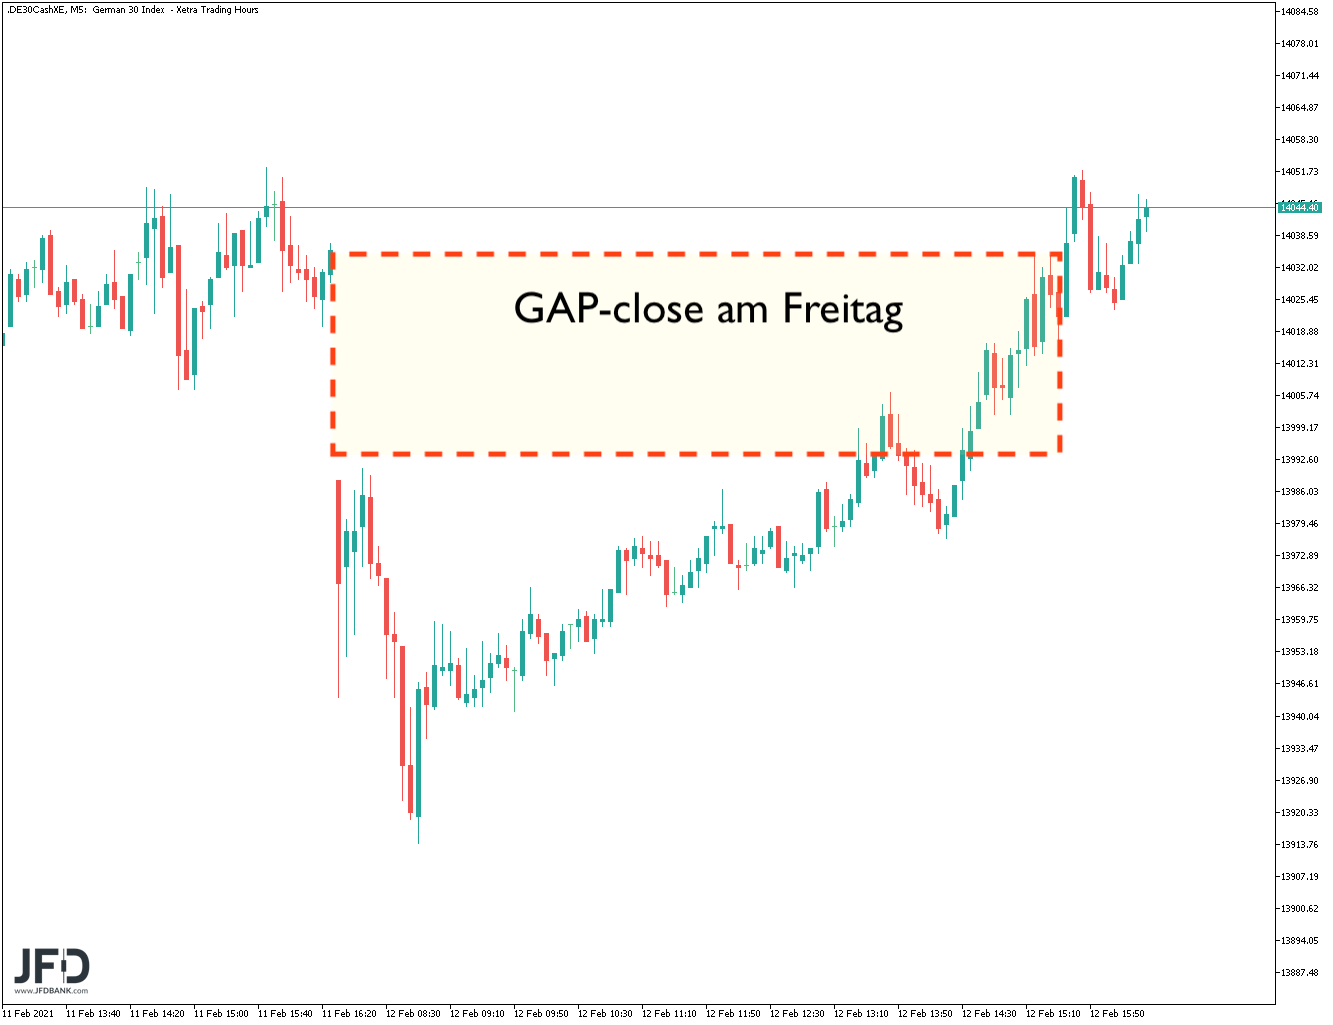 DAX-GAP-close am Freitag den 12.02.2021